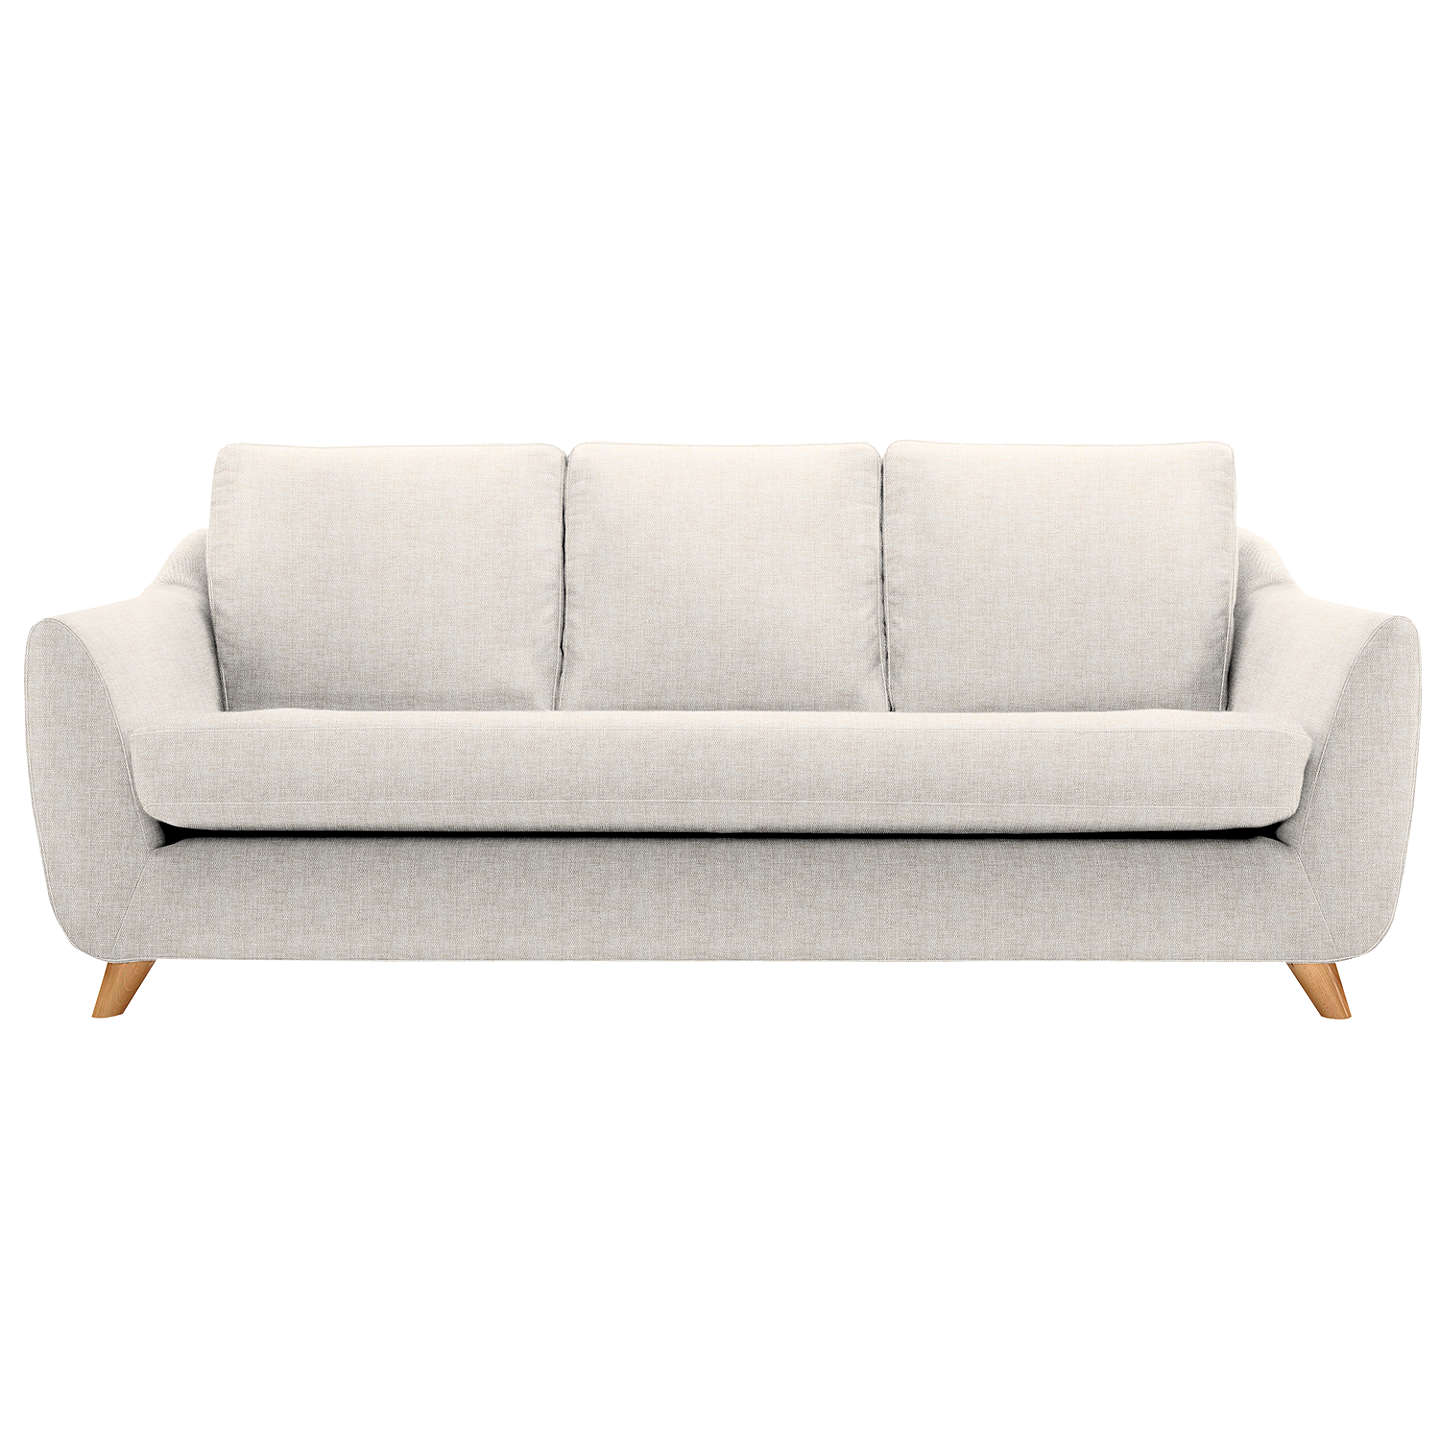 BuyG Plan Vintage The Sixty Seven Large 3 Seater Sofa, Marl Cream Online at johnlewis.com